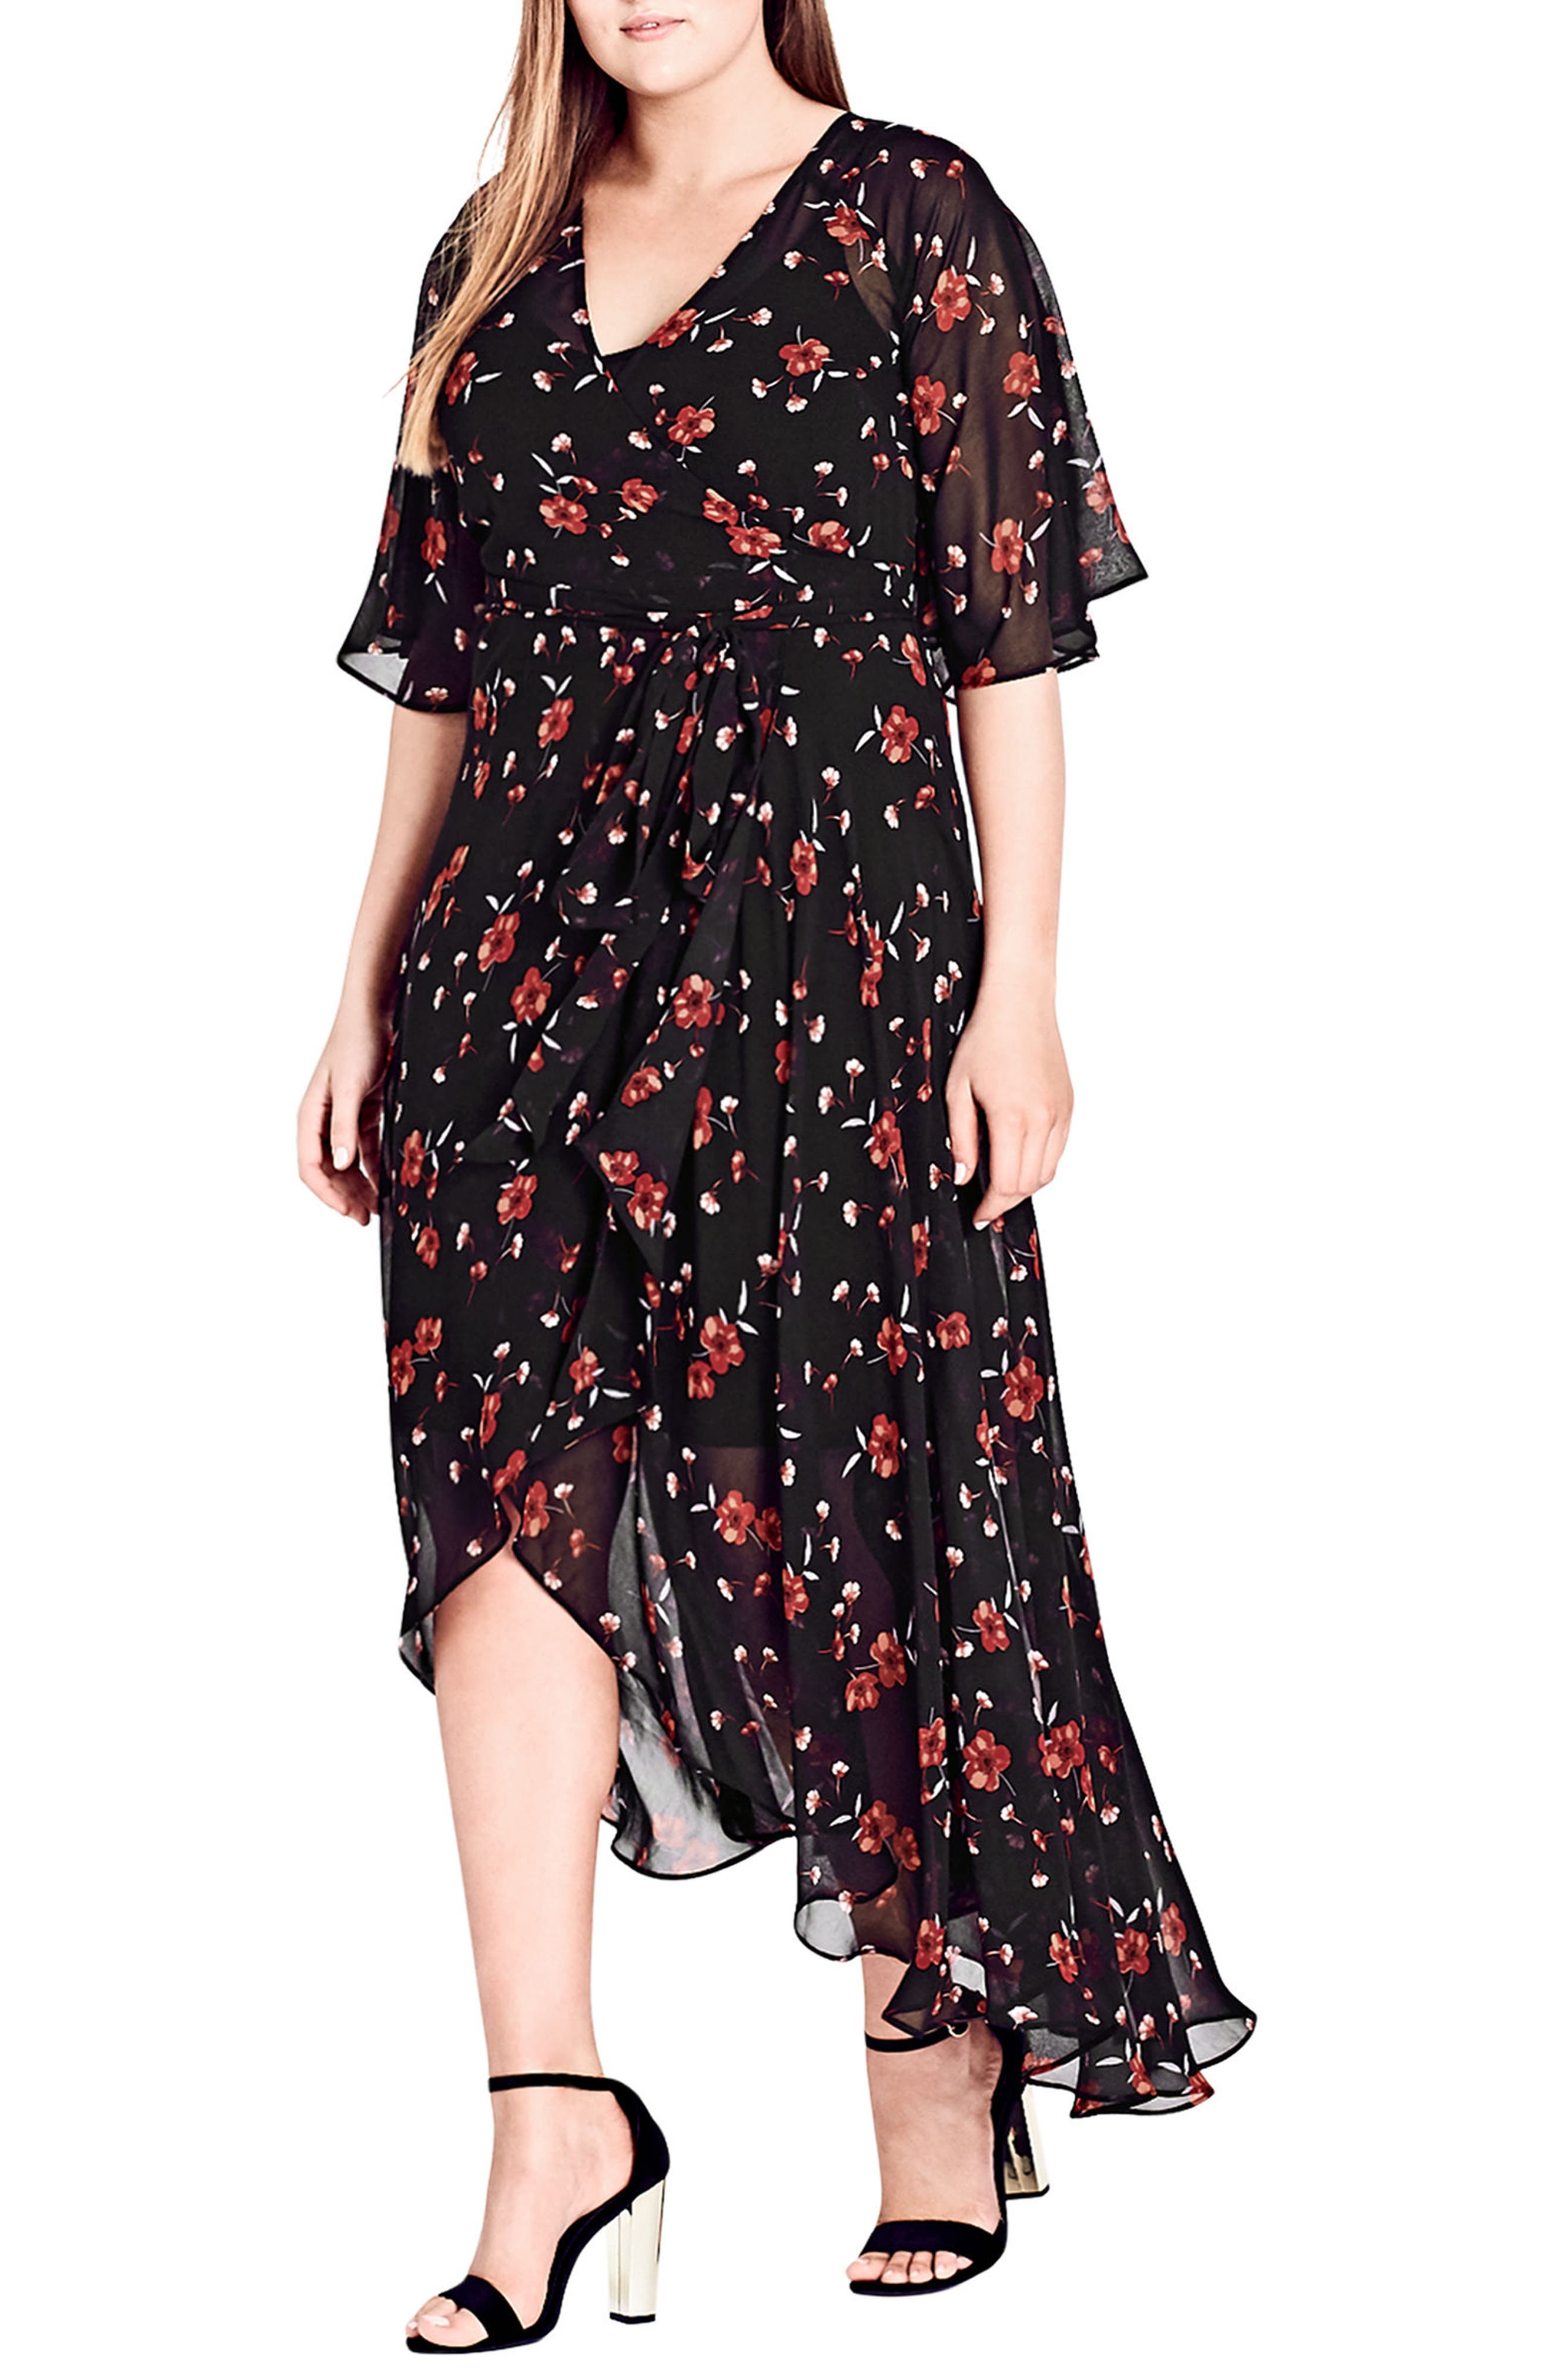 Fall in Love Floral Maxi Dress,                             Main thumbnail 1, color,                             Black